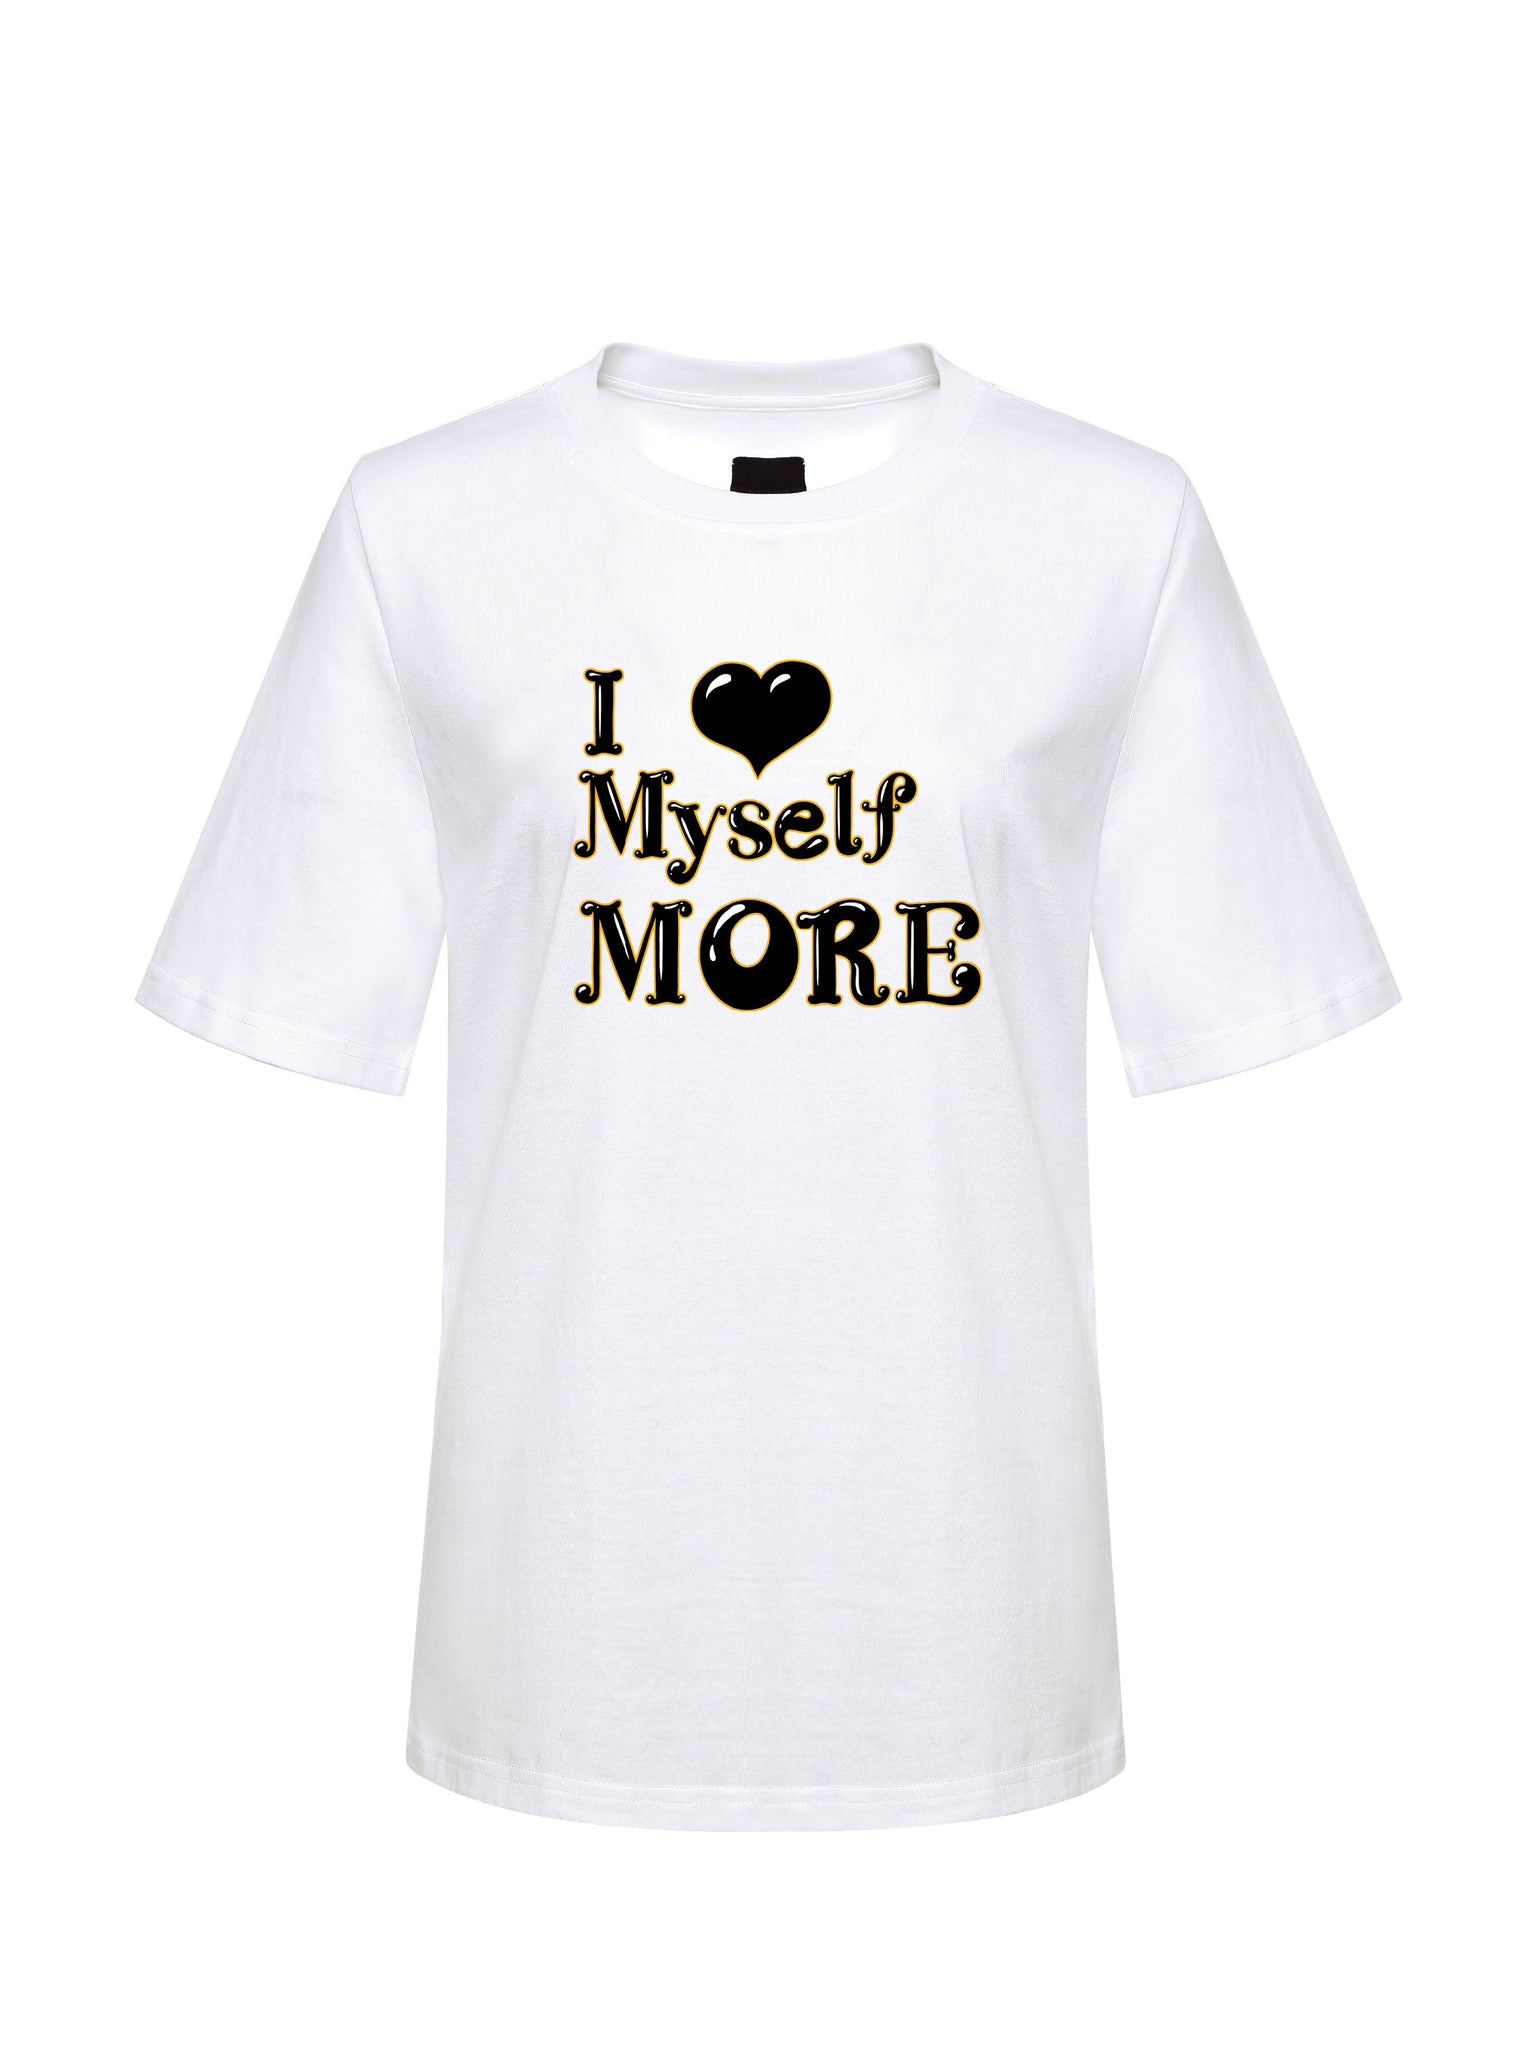 I Love Myself More Tee